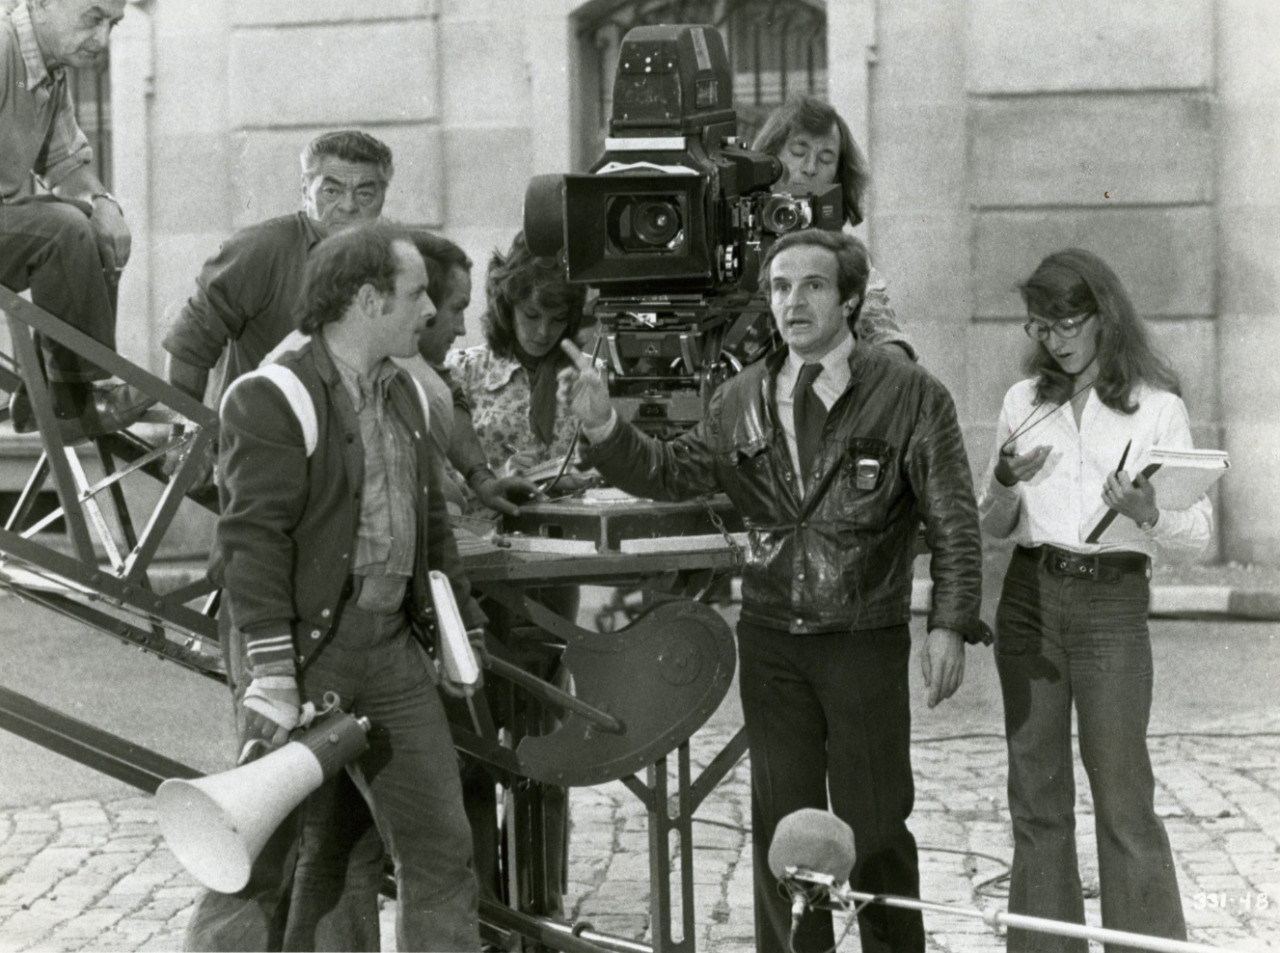 François Truffaut Directs Behind the Scenes